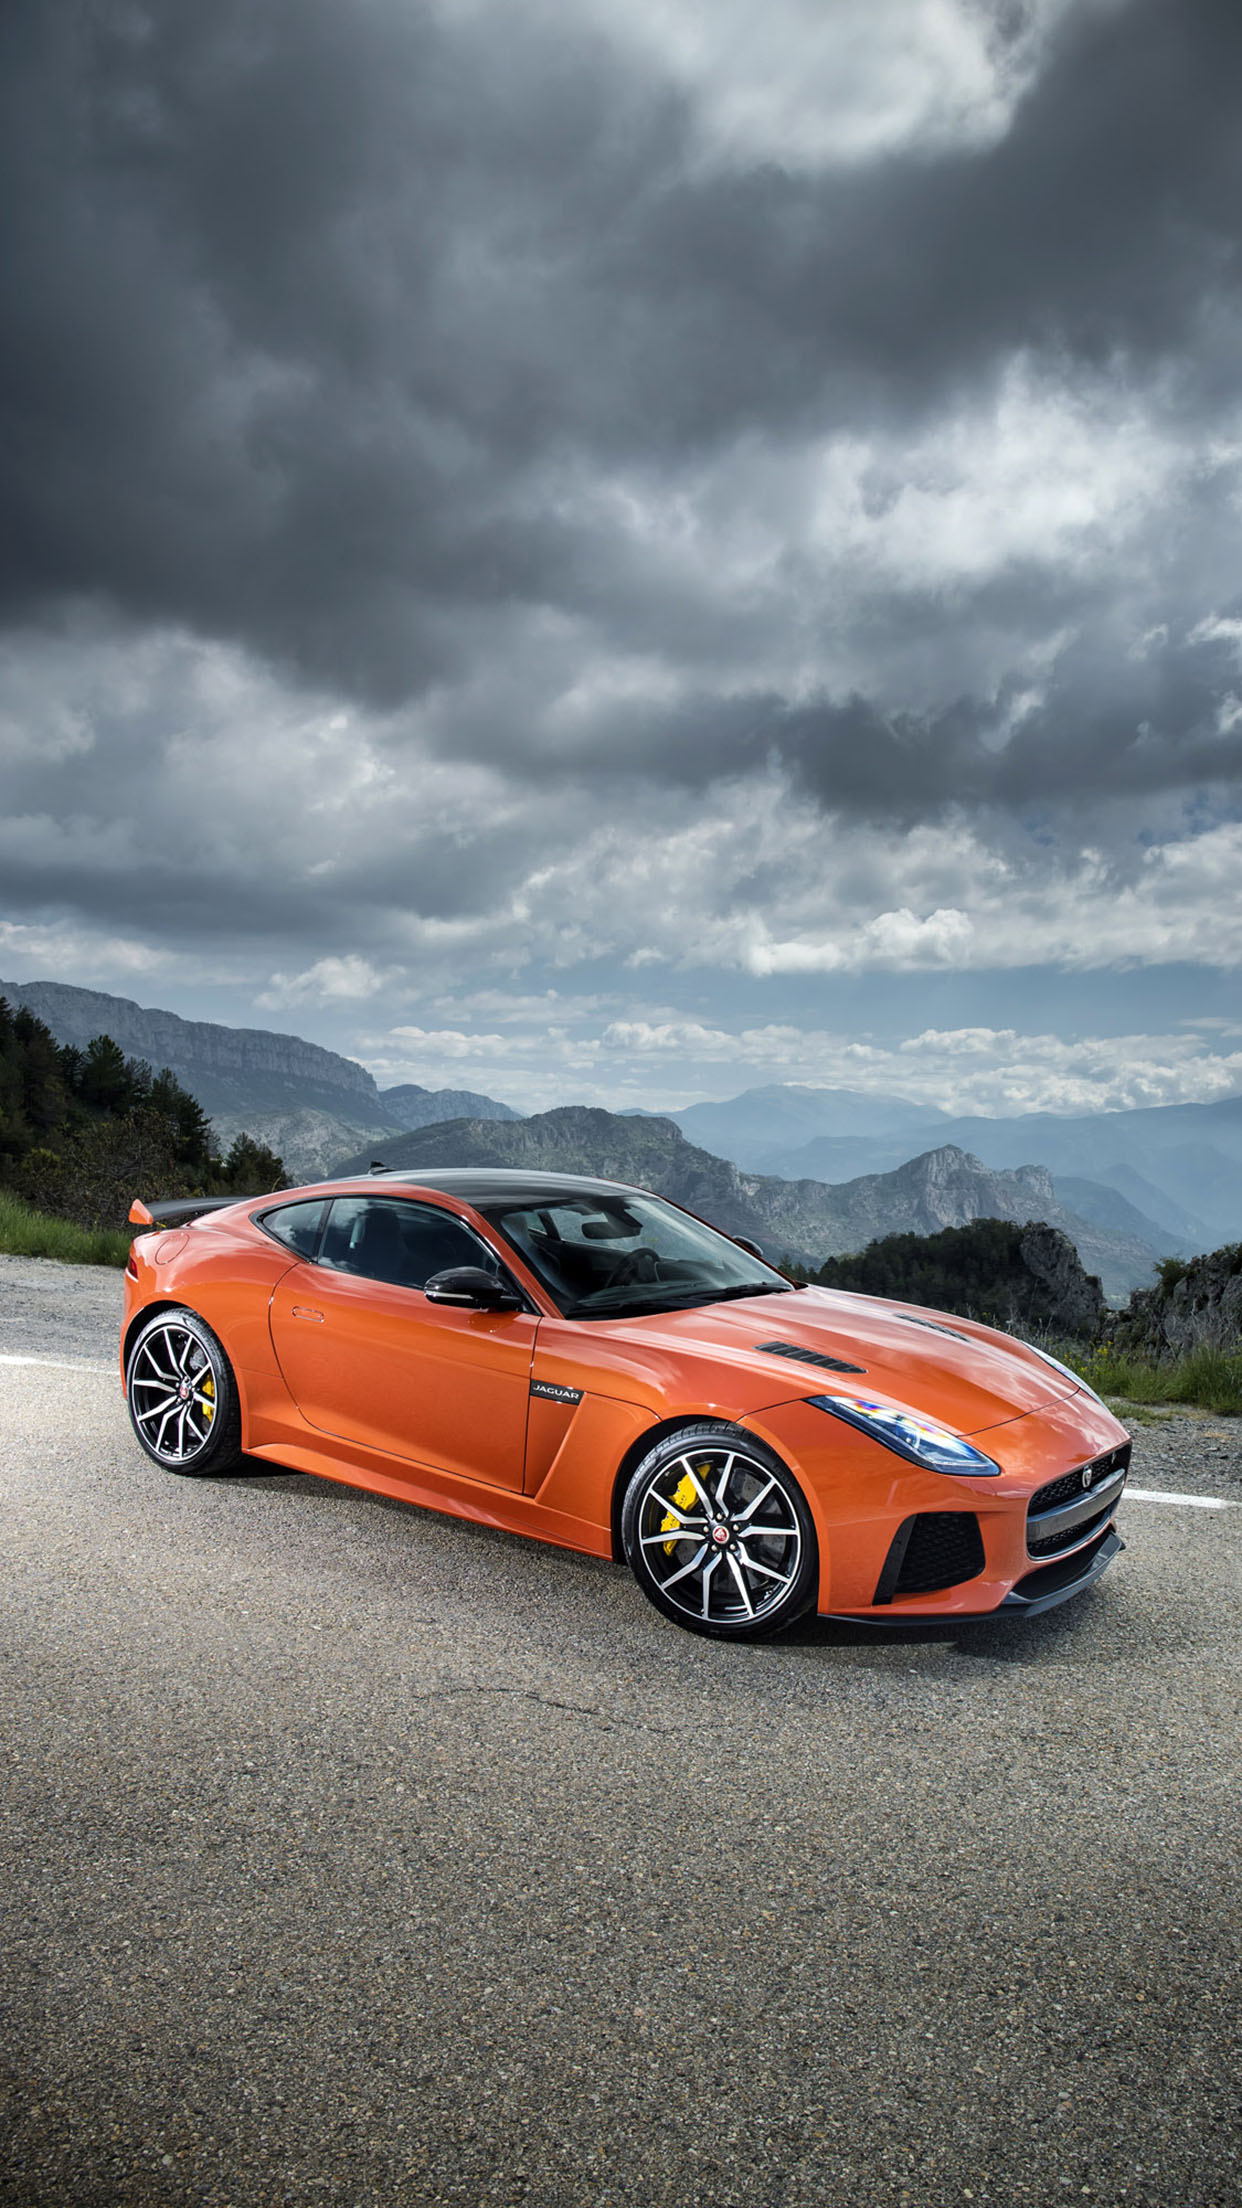 Jaguard F Type SVR Side 3Wallpapers iPhone Parallax Jaguard F Type SVR side